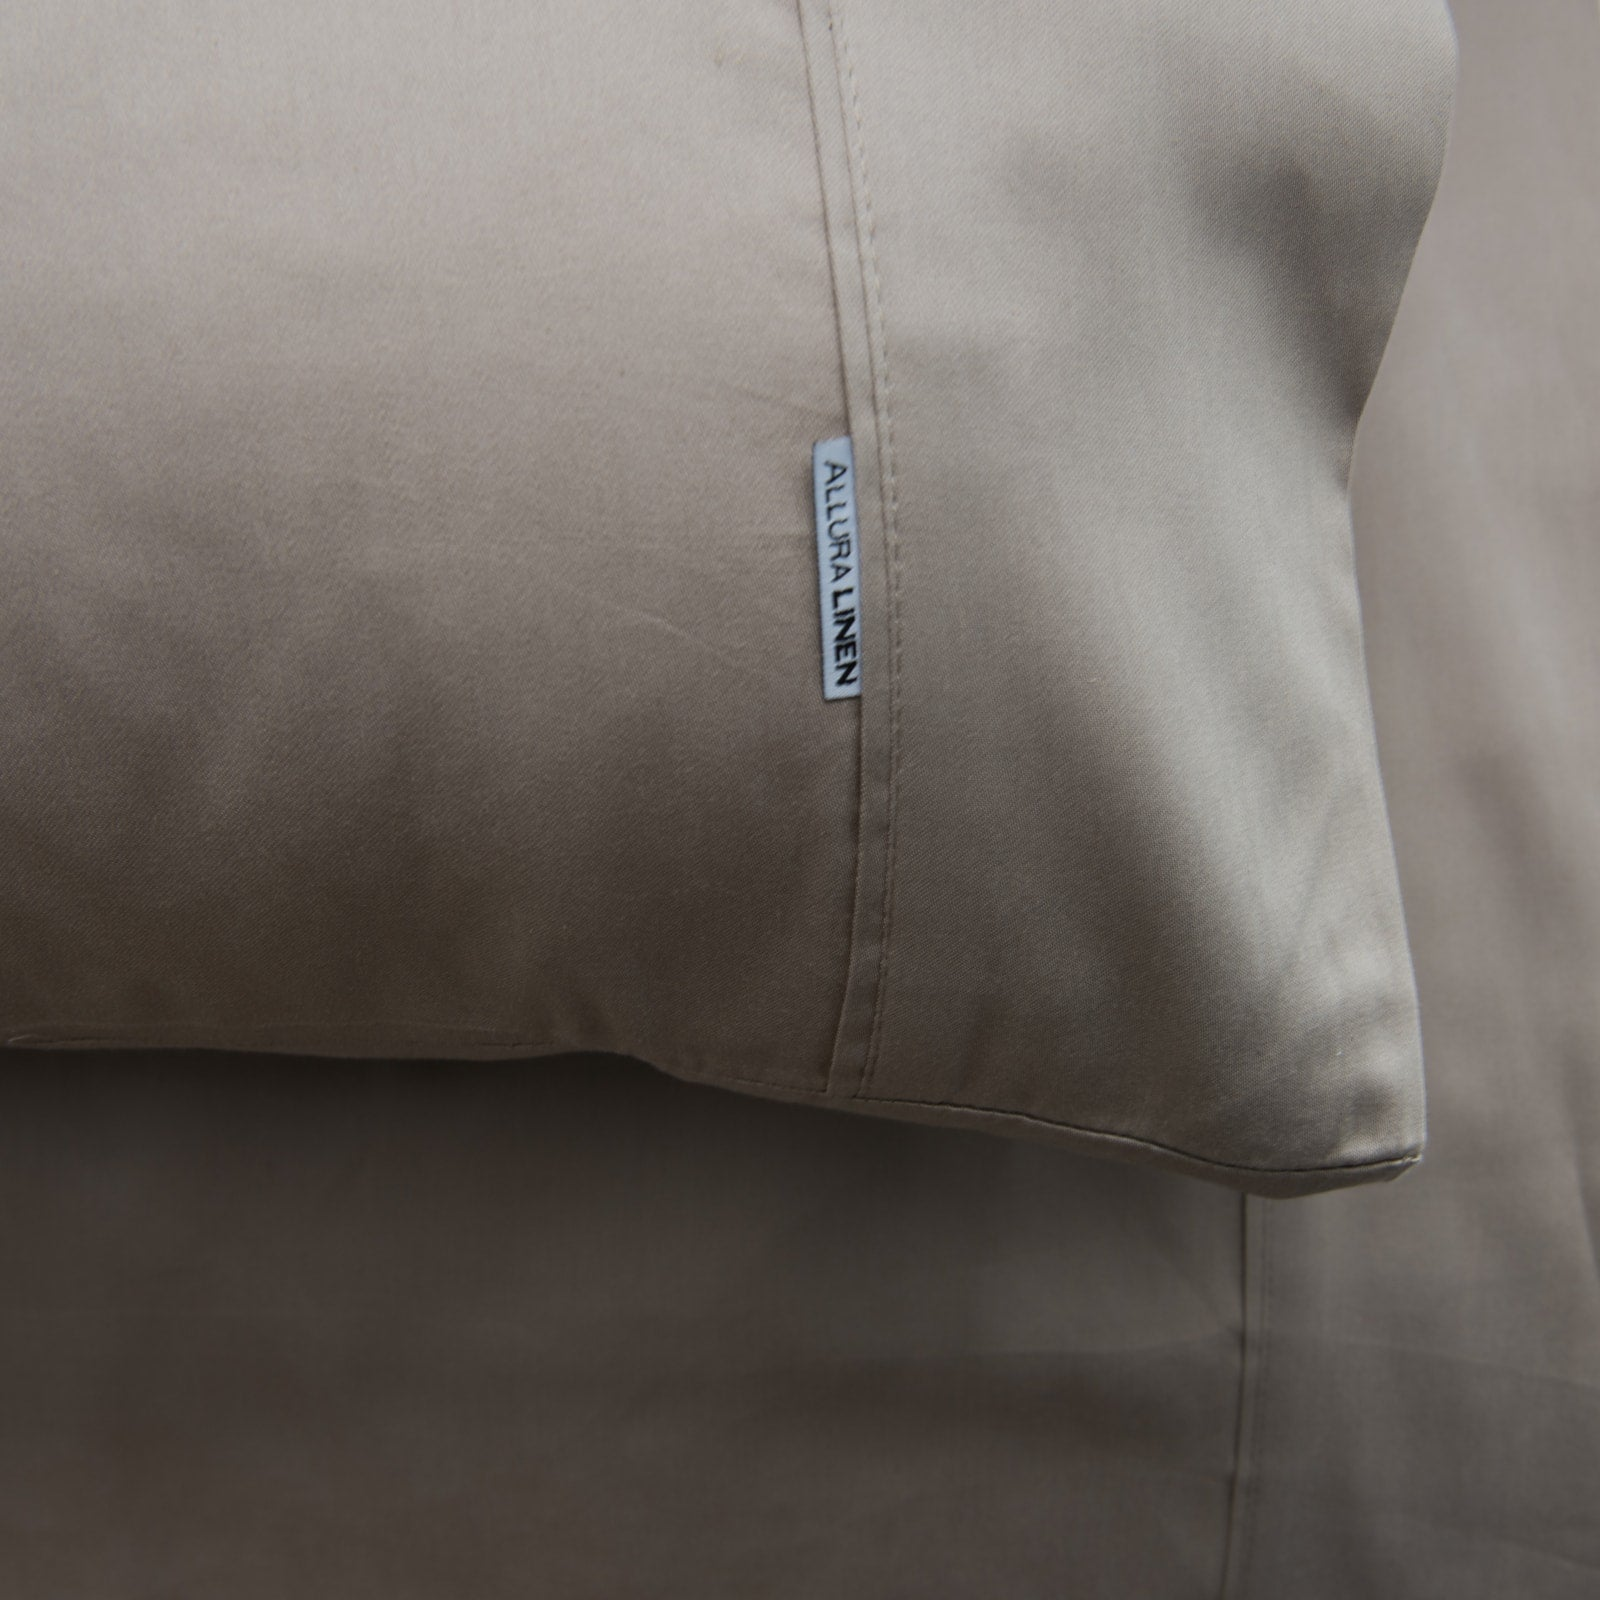 Taupe 400TC, thread count, 100% cotton, sateen finish, cuffed finish, sheets, sheet set